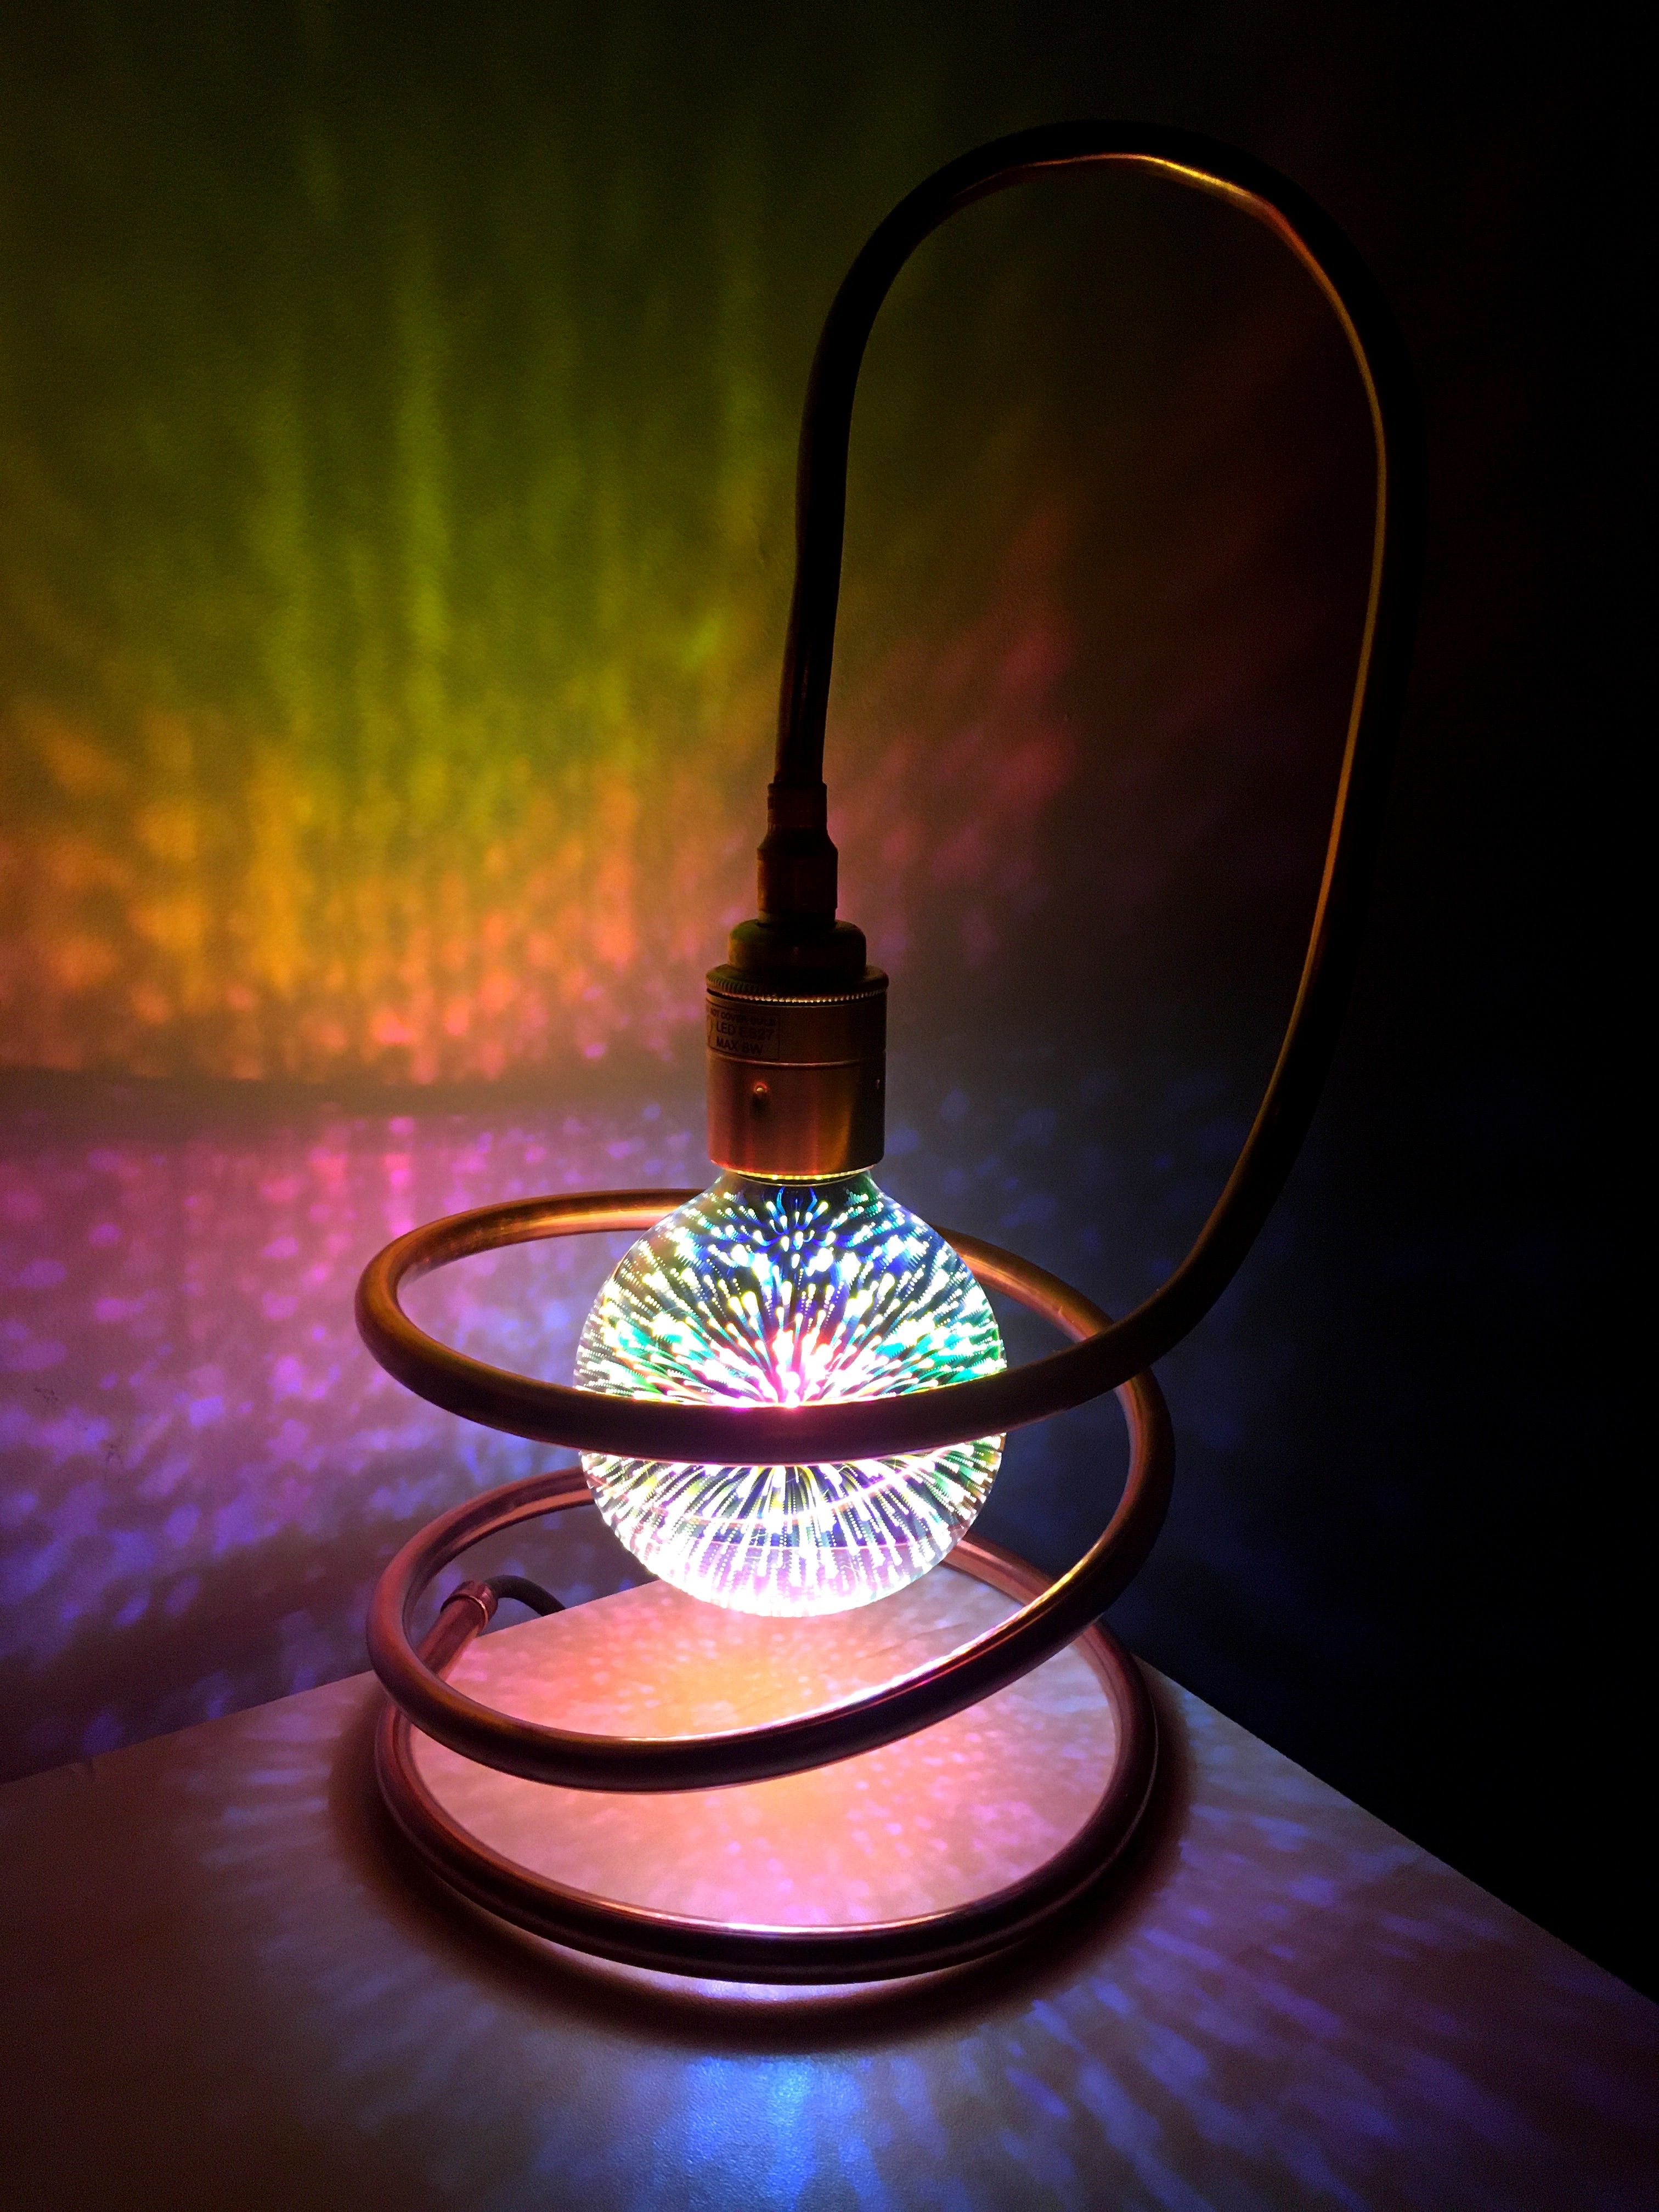 Bring your Room to 'Light' with Light'Artedly